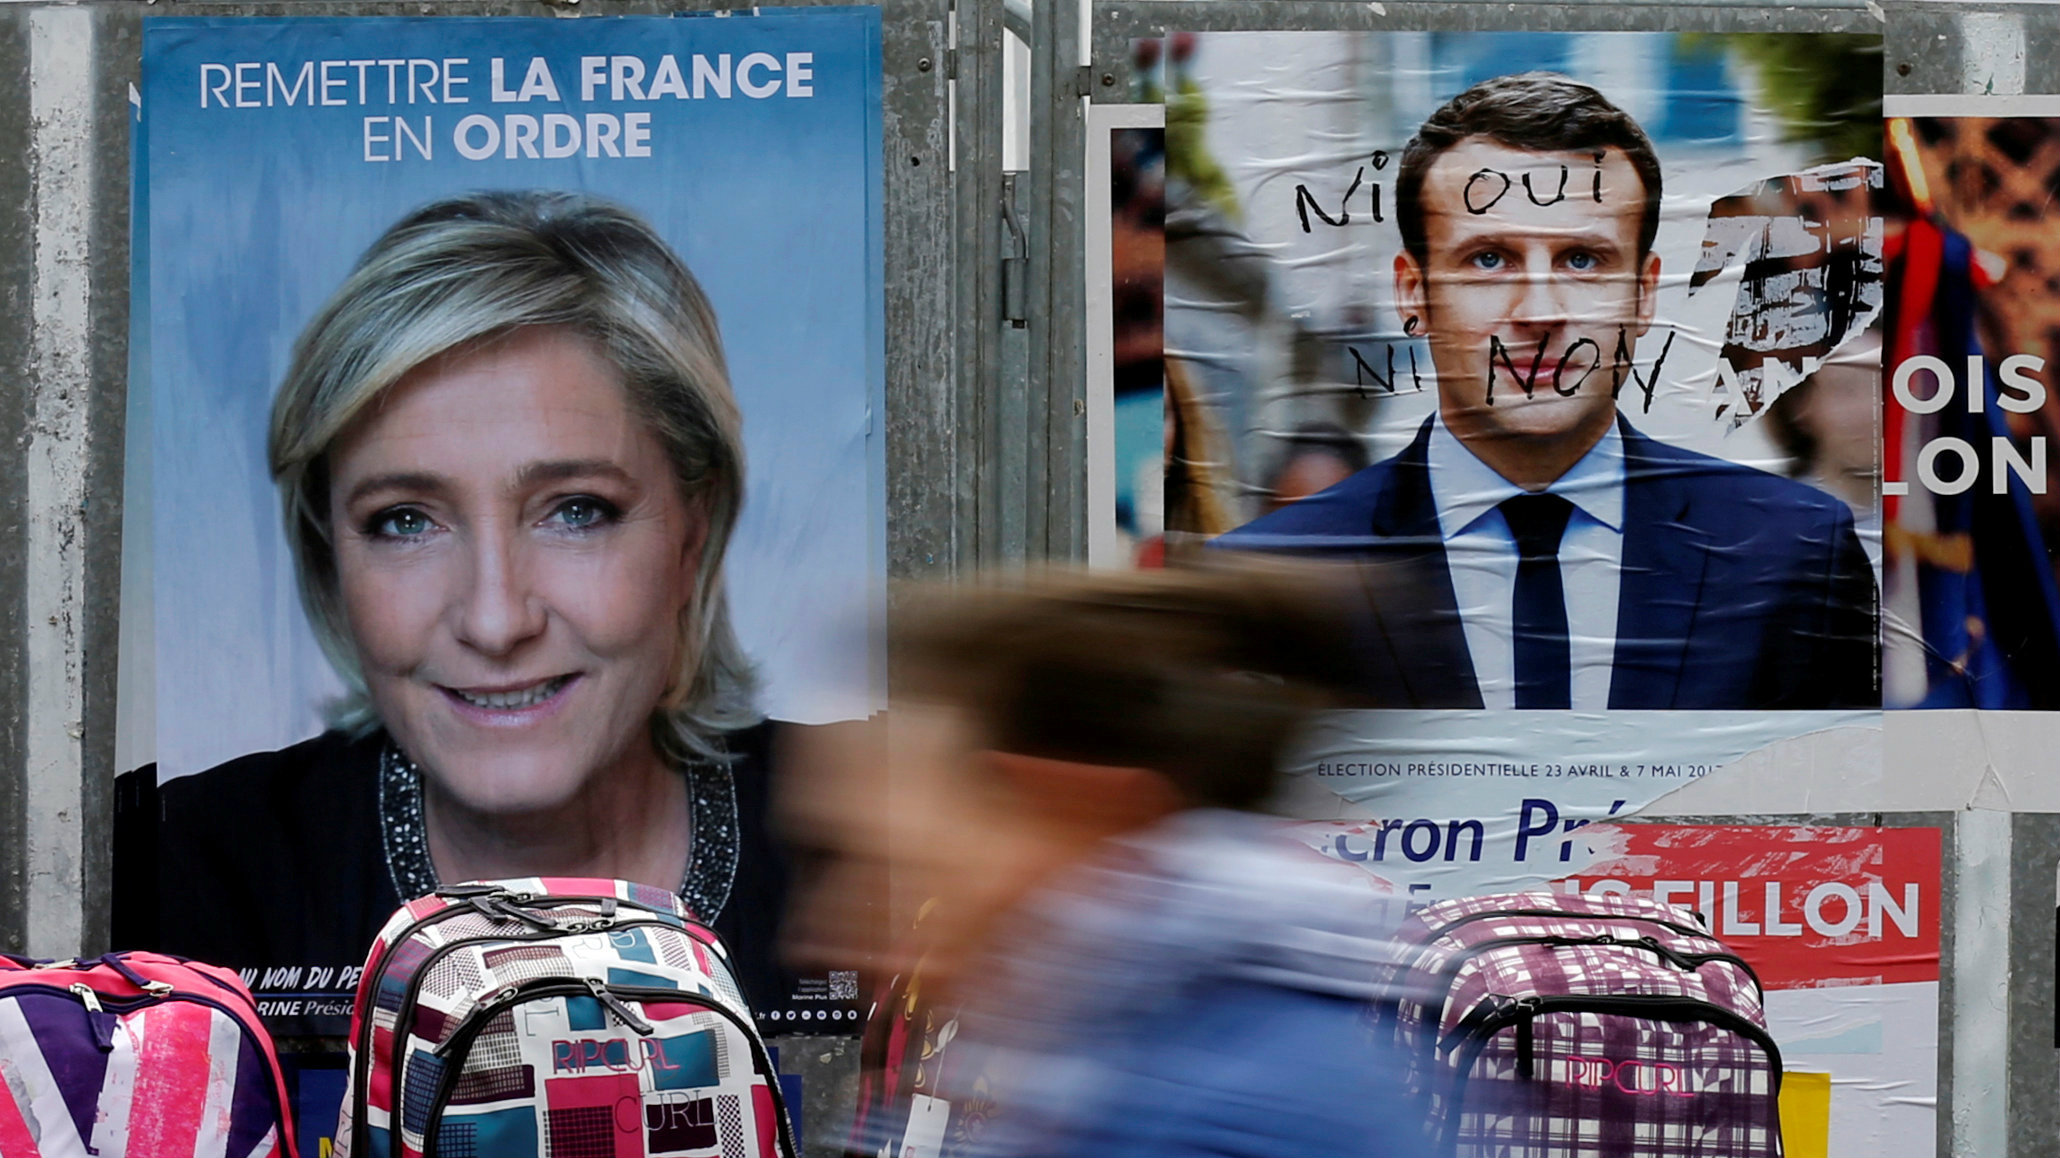 le pen and macron posters